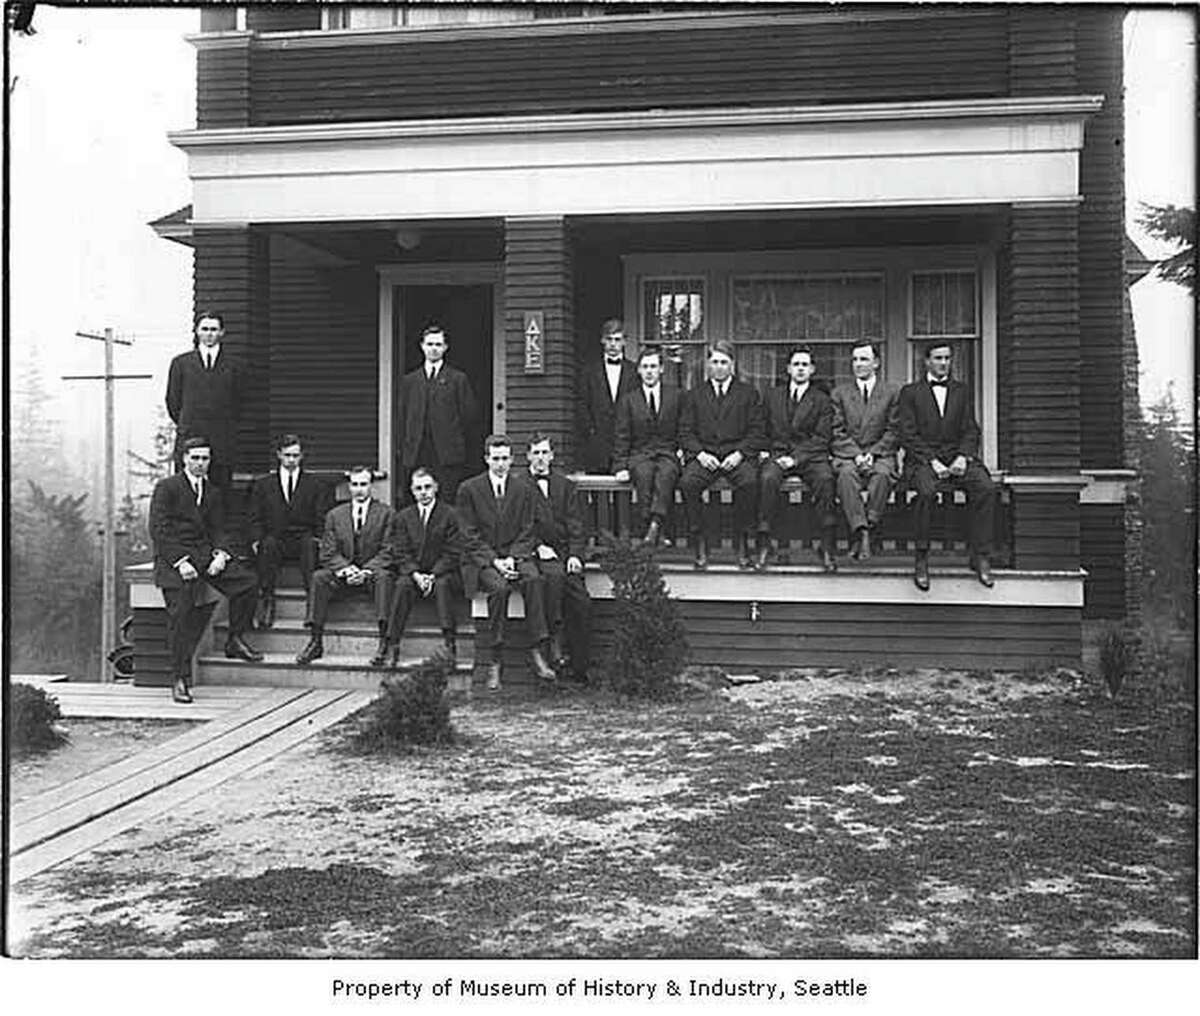 Delta Kappa Epsilon fraternity members outside their house, University of Washington, Seattle, 1915. Several fraternities built substantial, ambitious houses in the newly established tract north of the University called Greek Row. The Delta Kappa Epsilon house was constructed in 1914 at 5224 19th Avenue NE.